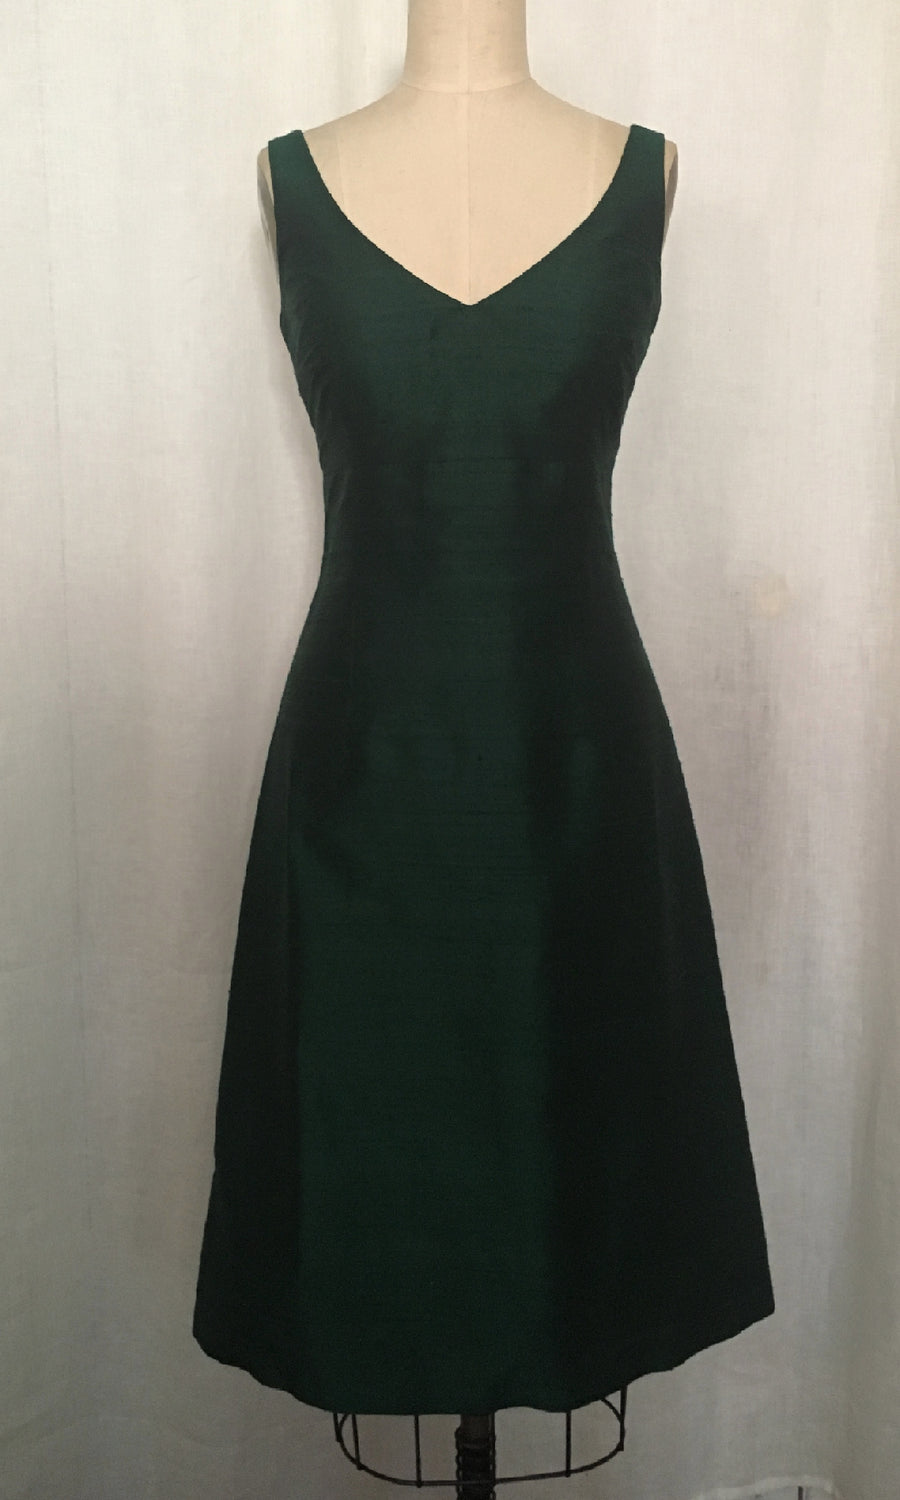 Emerald Classic V-neck A-line Cocktail Dress, size Medium